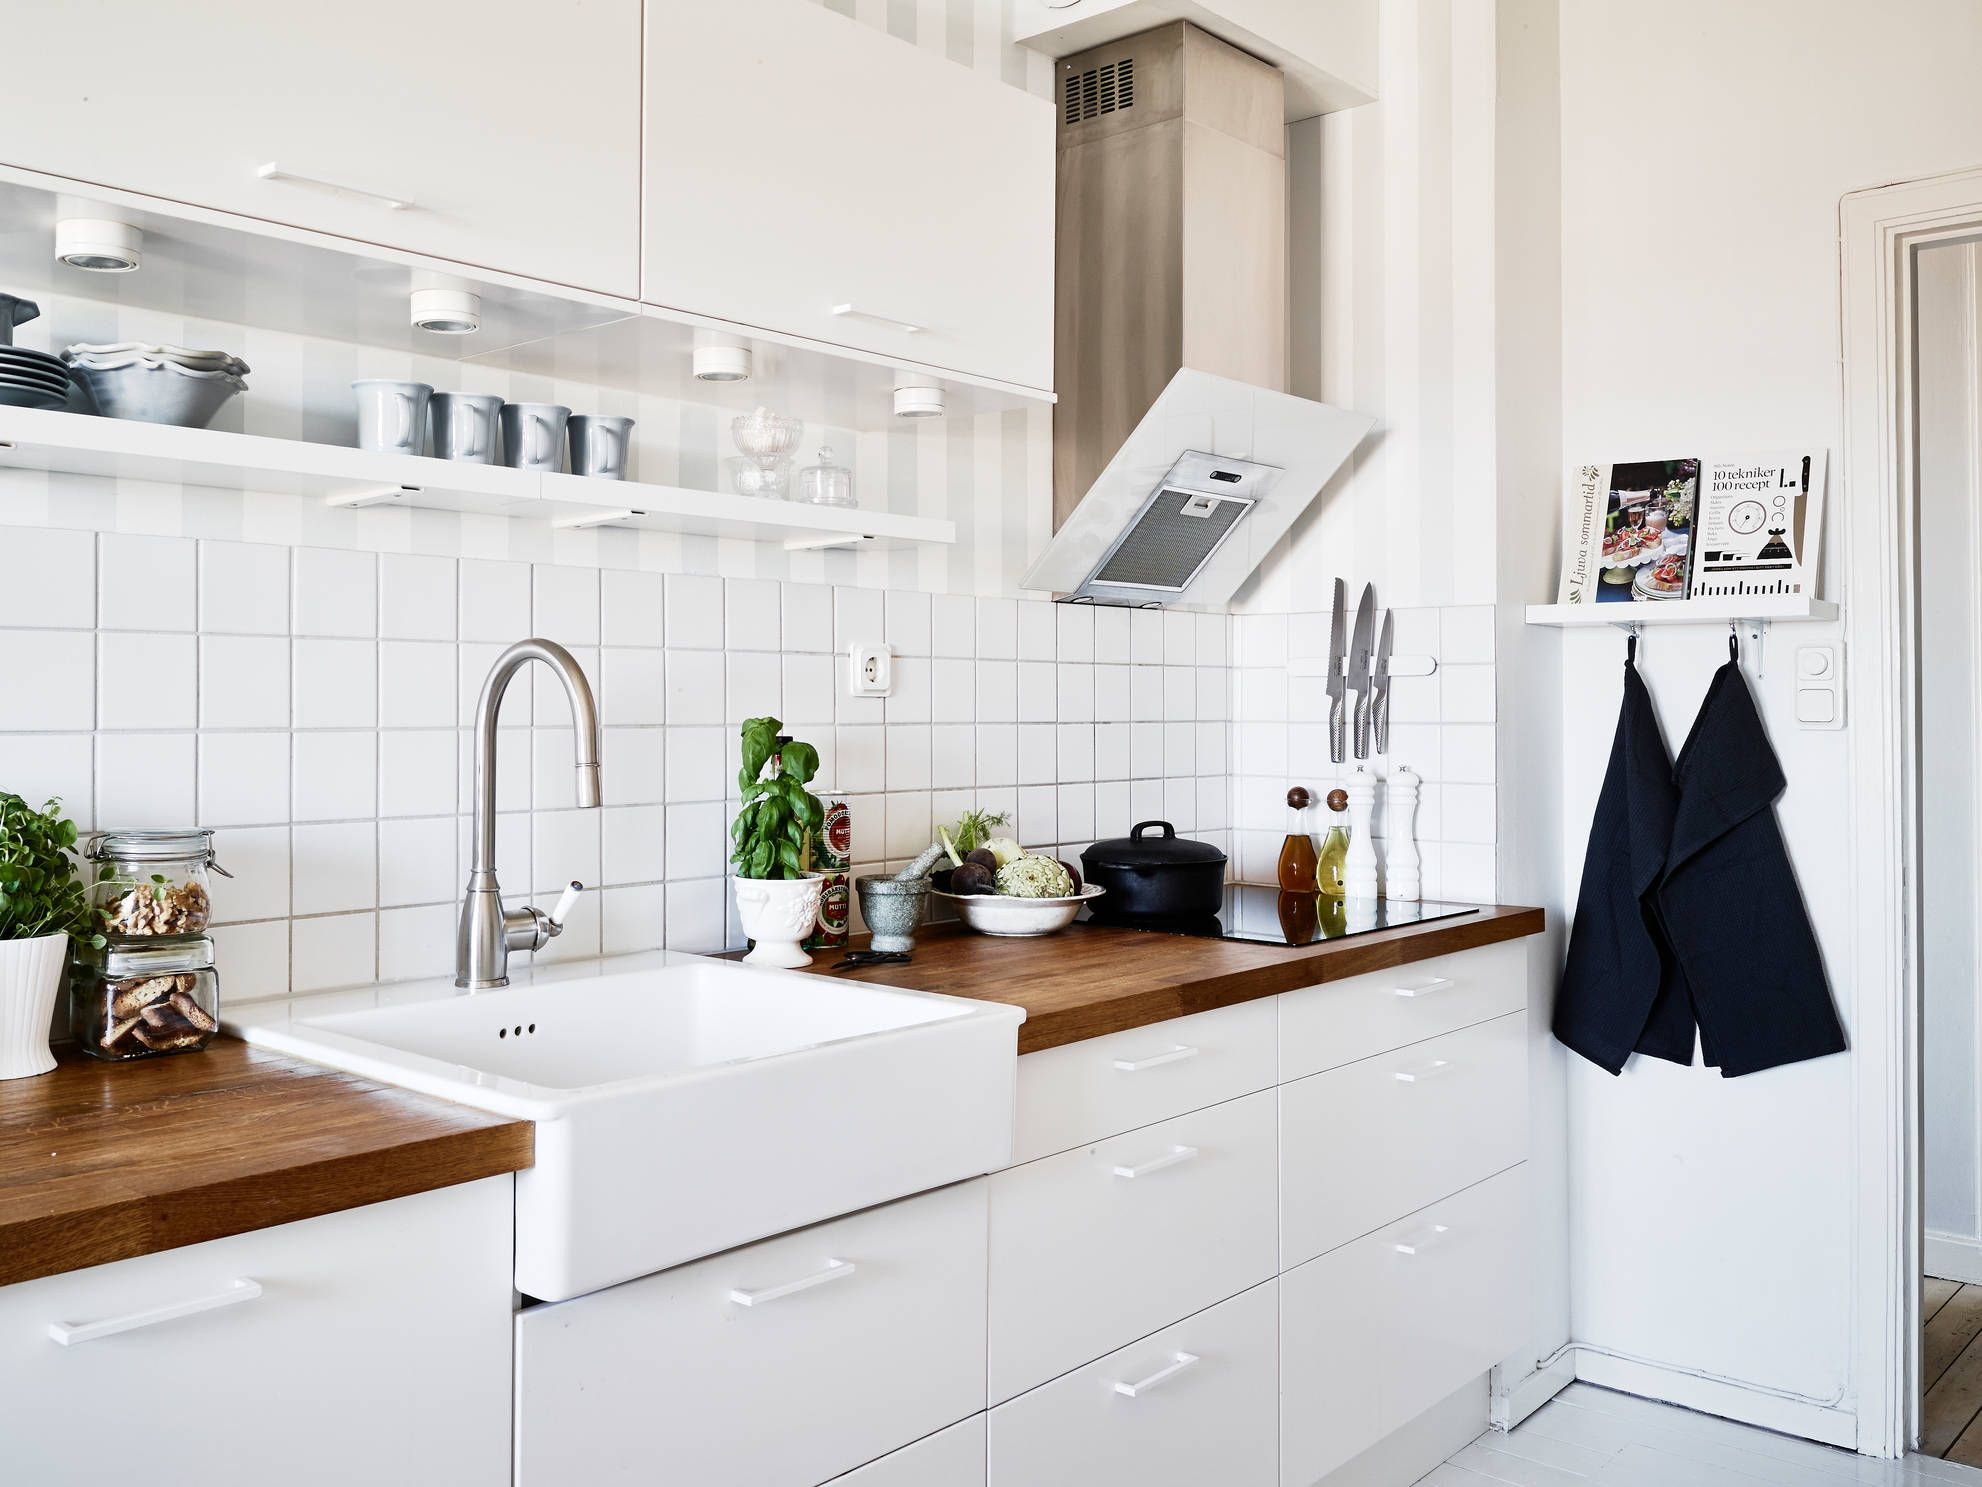 White Kitchen With Wooden Bench Top Large Sink